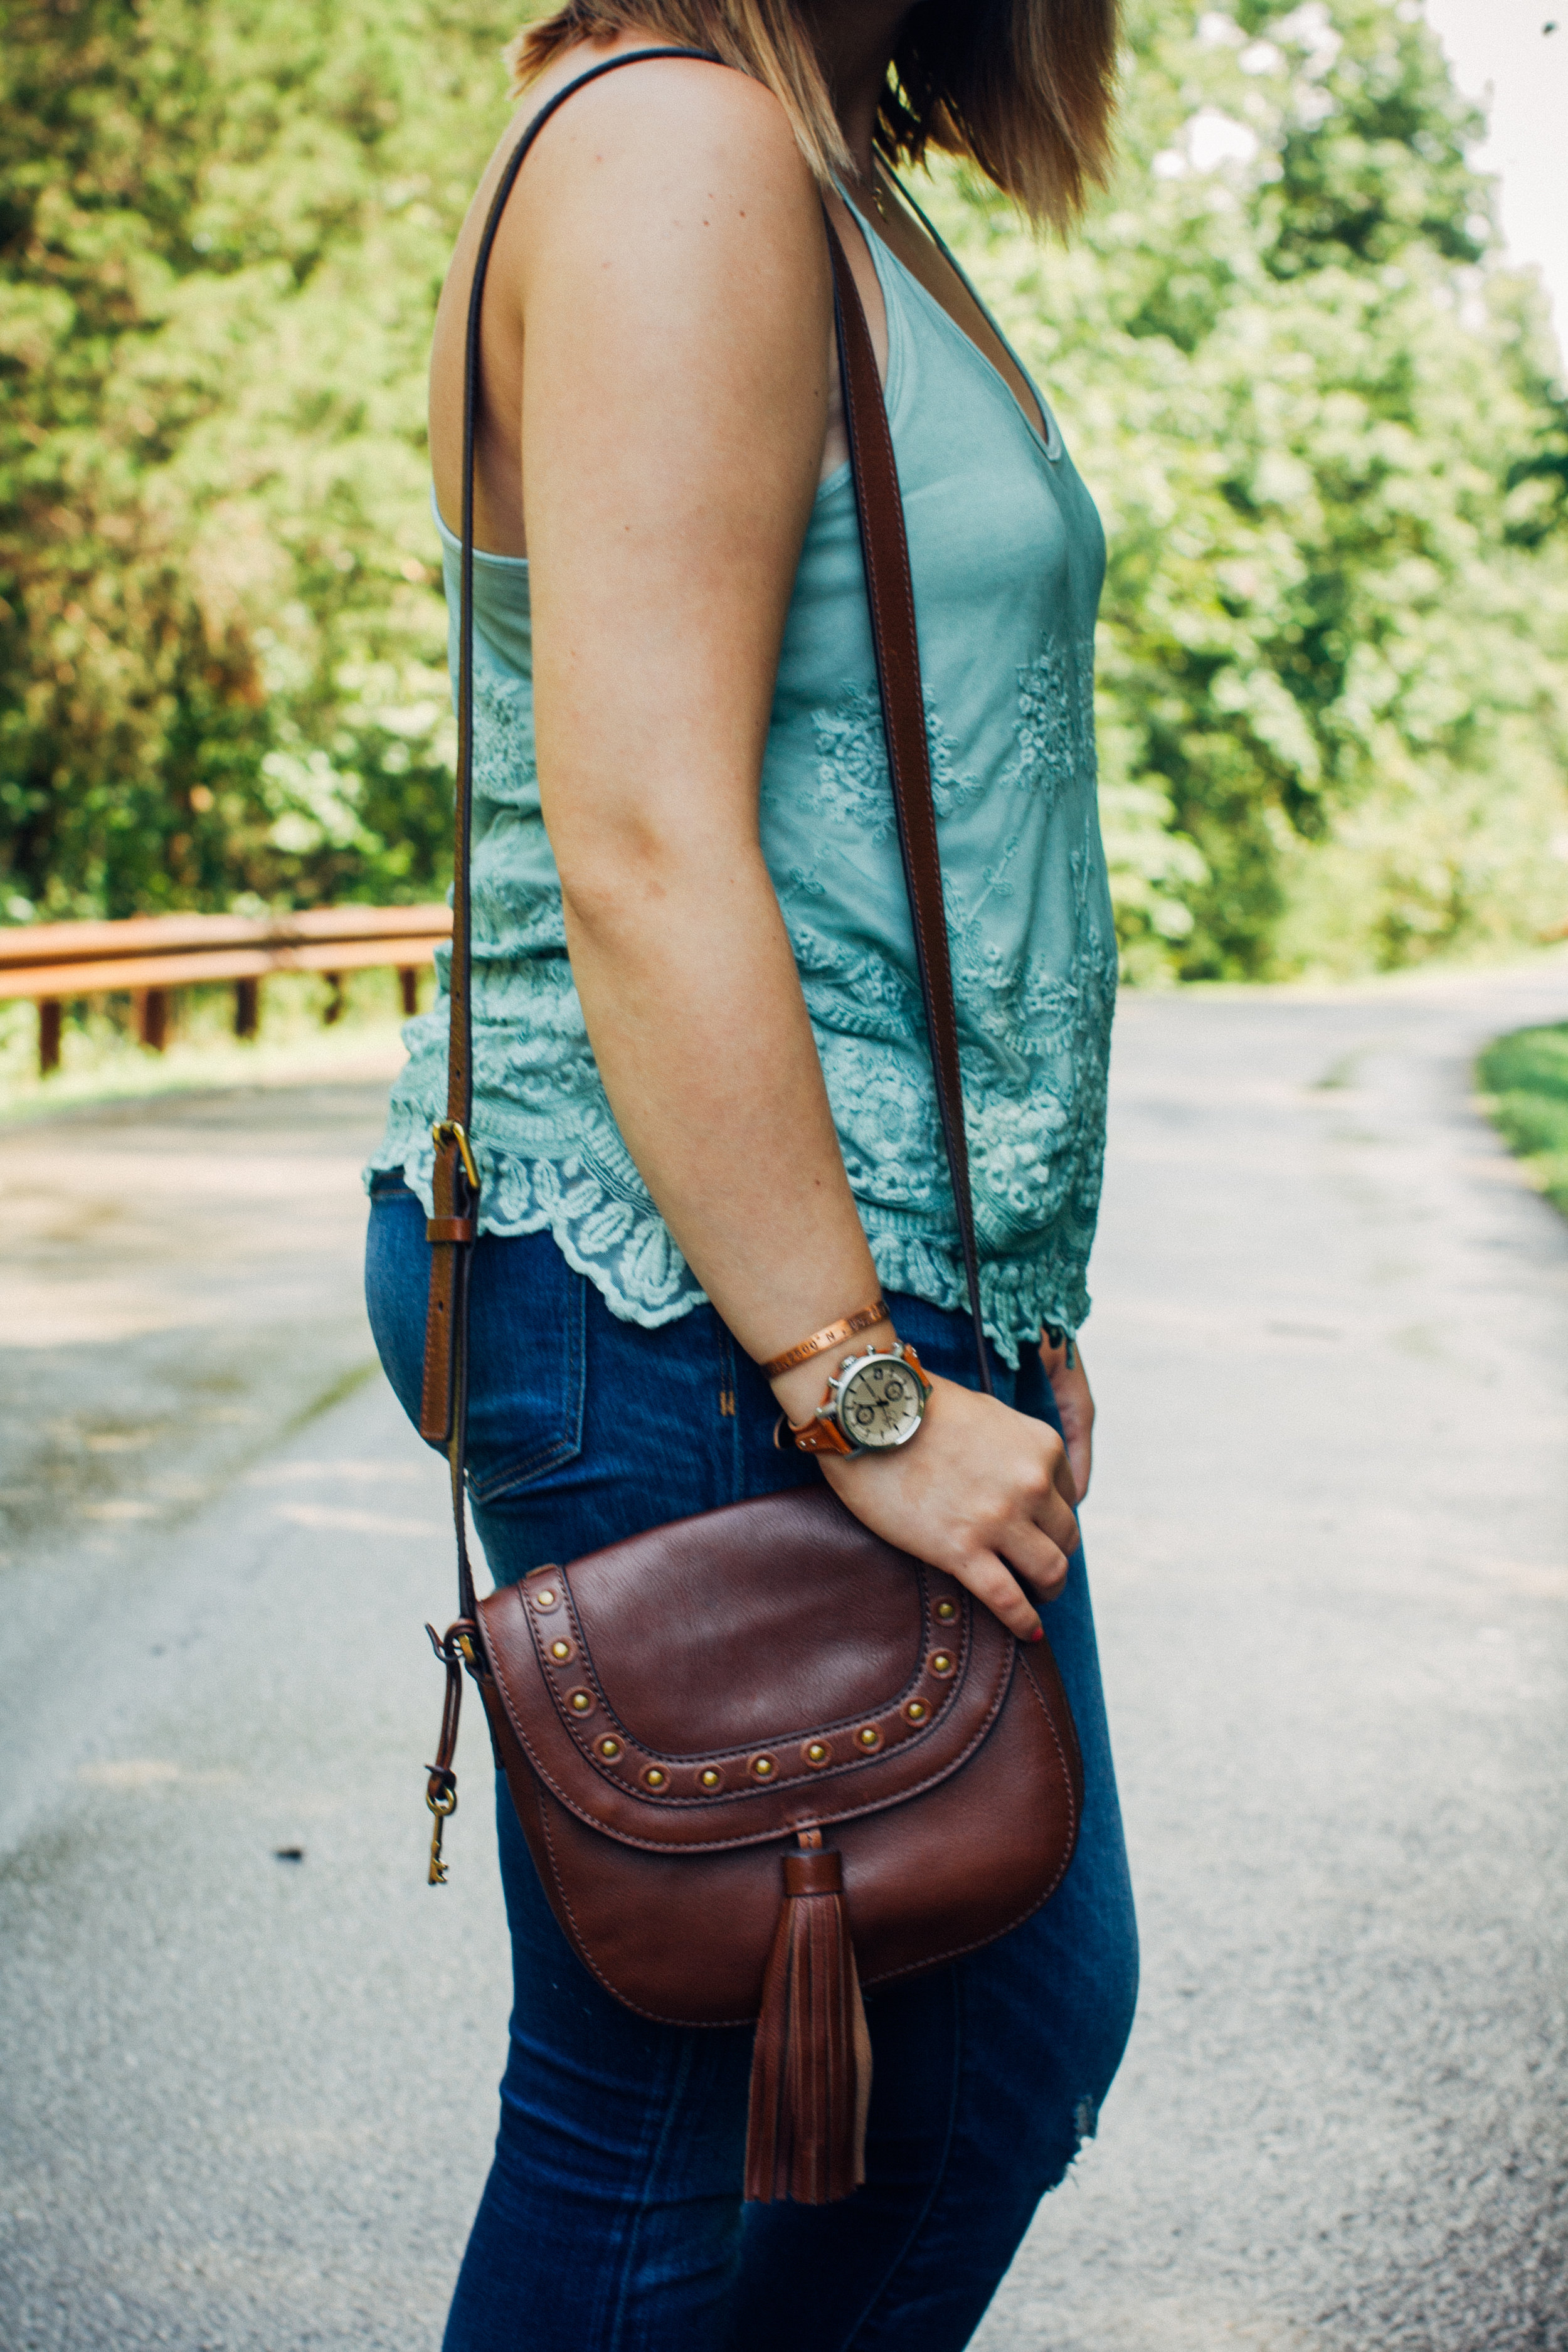 #CampFossil Boho Fall Style via chelceytate.com @fossil, @madewell, @forever21, @target @urbanoutfitters